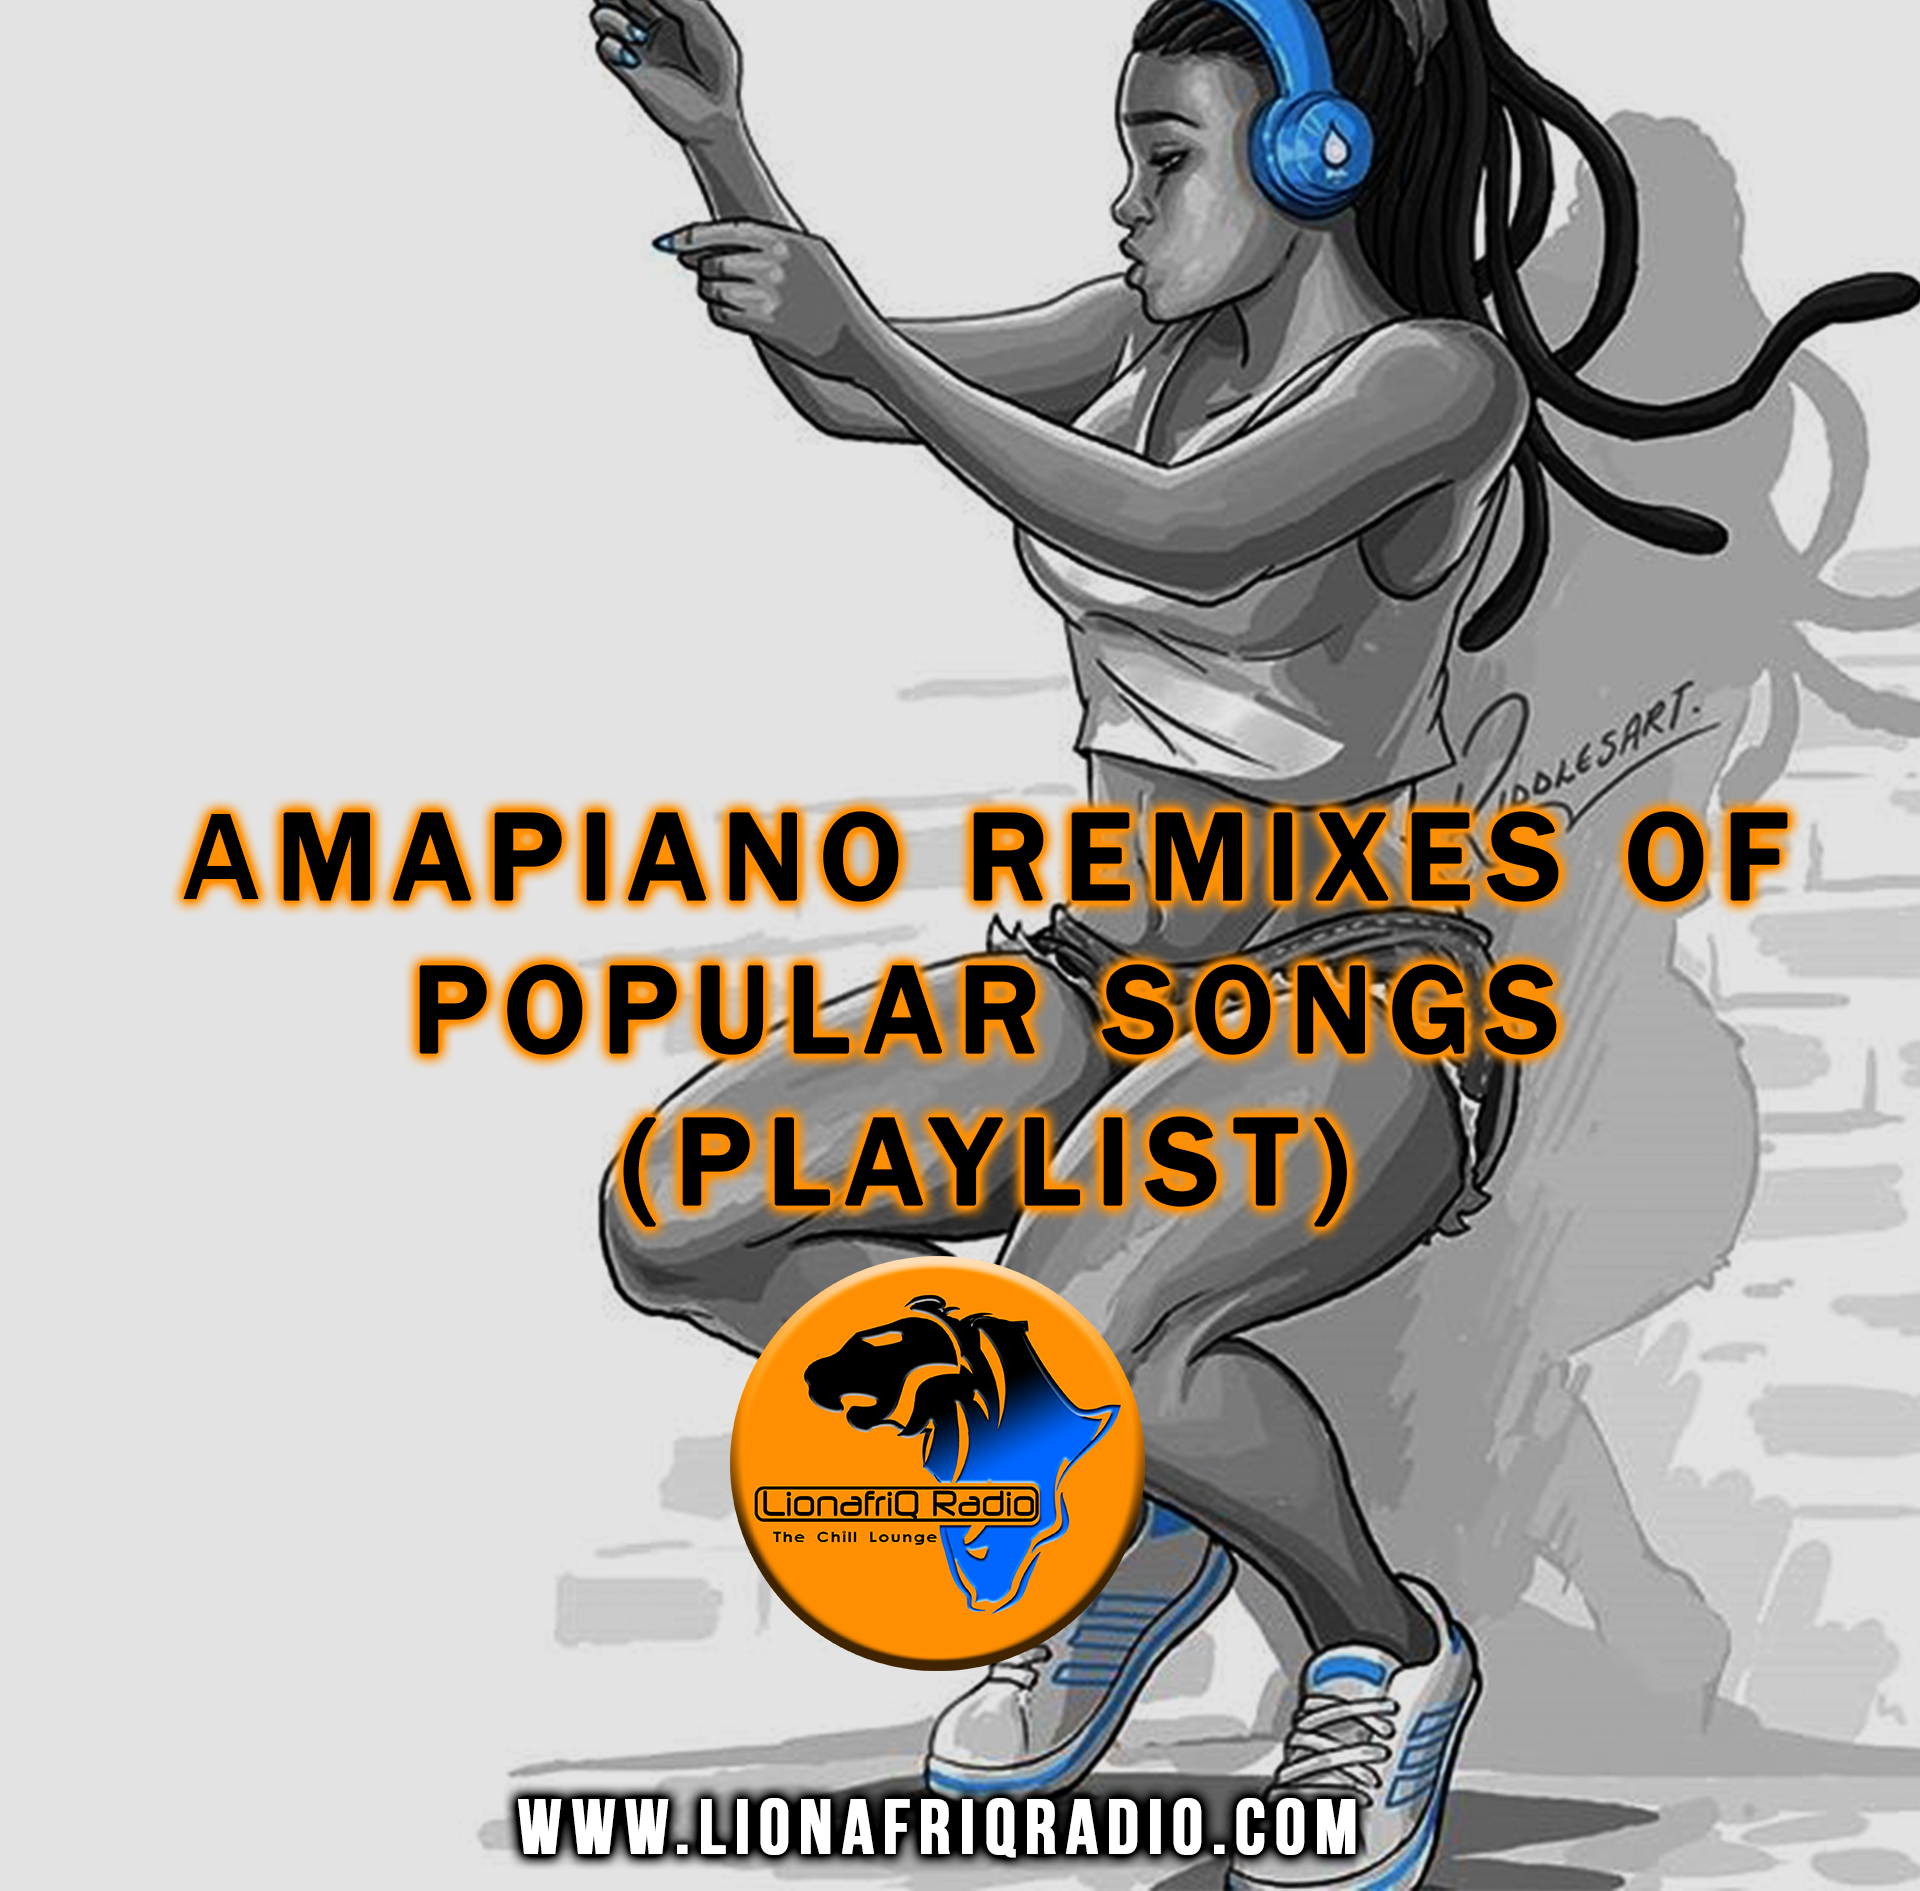 (Best)Amapiano Remixes of Popular Songs